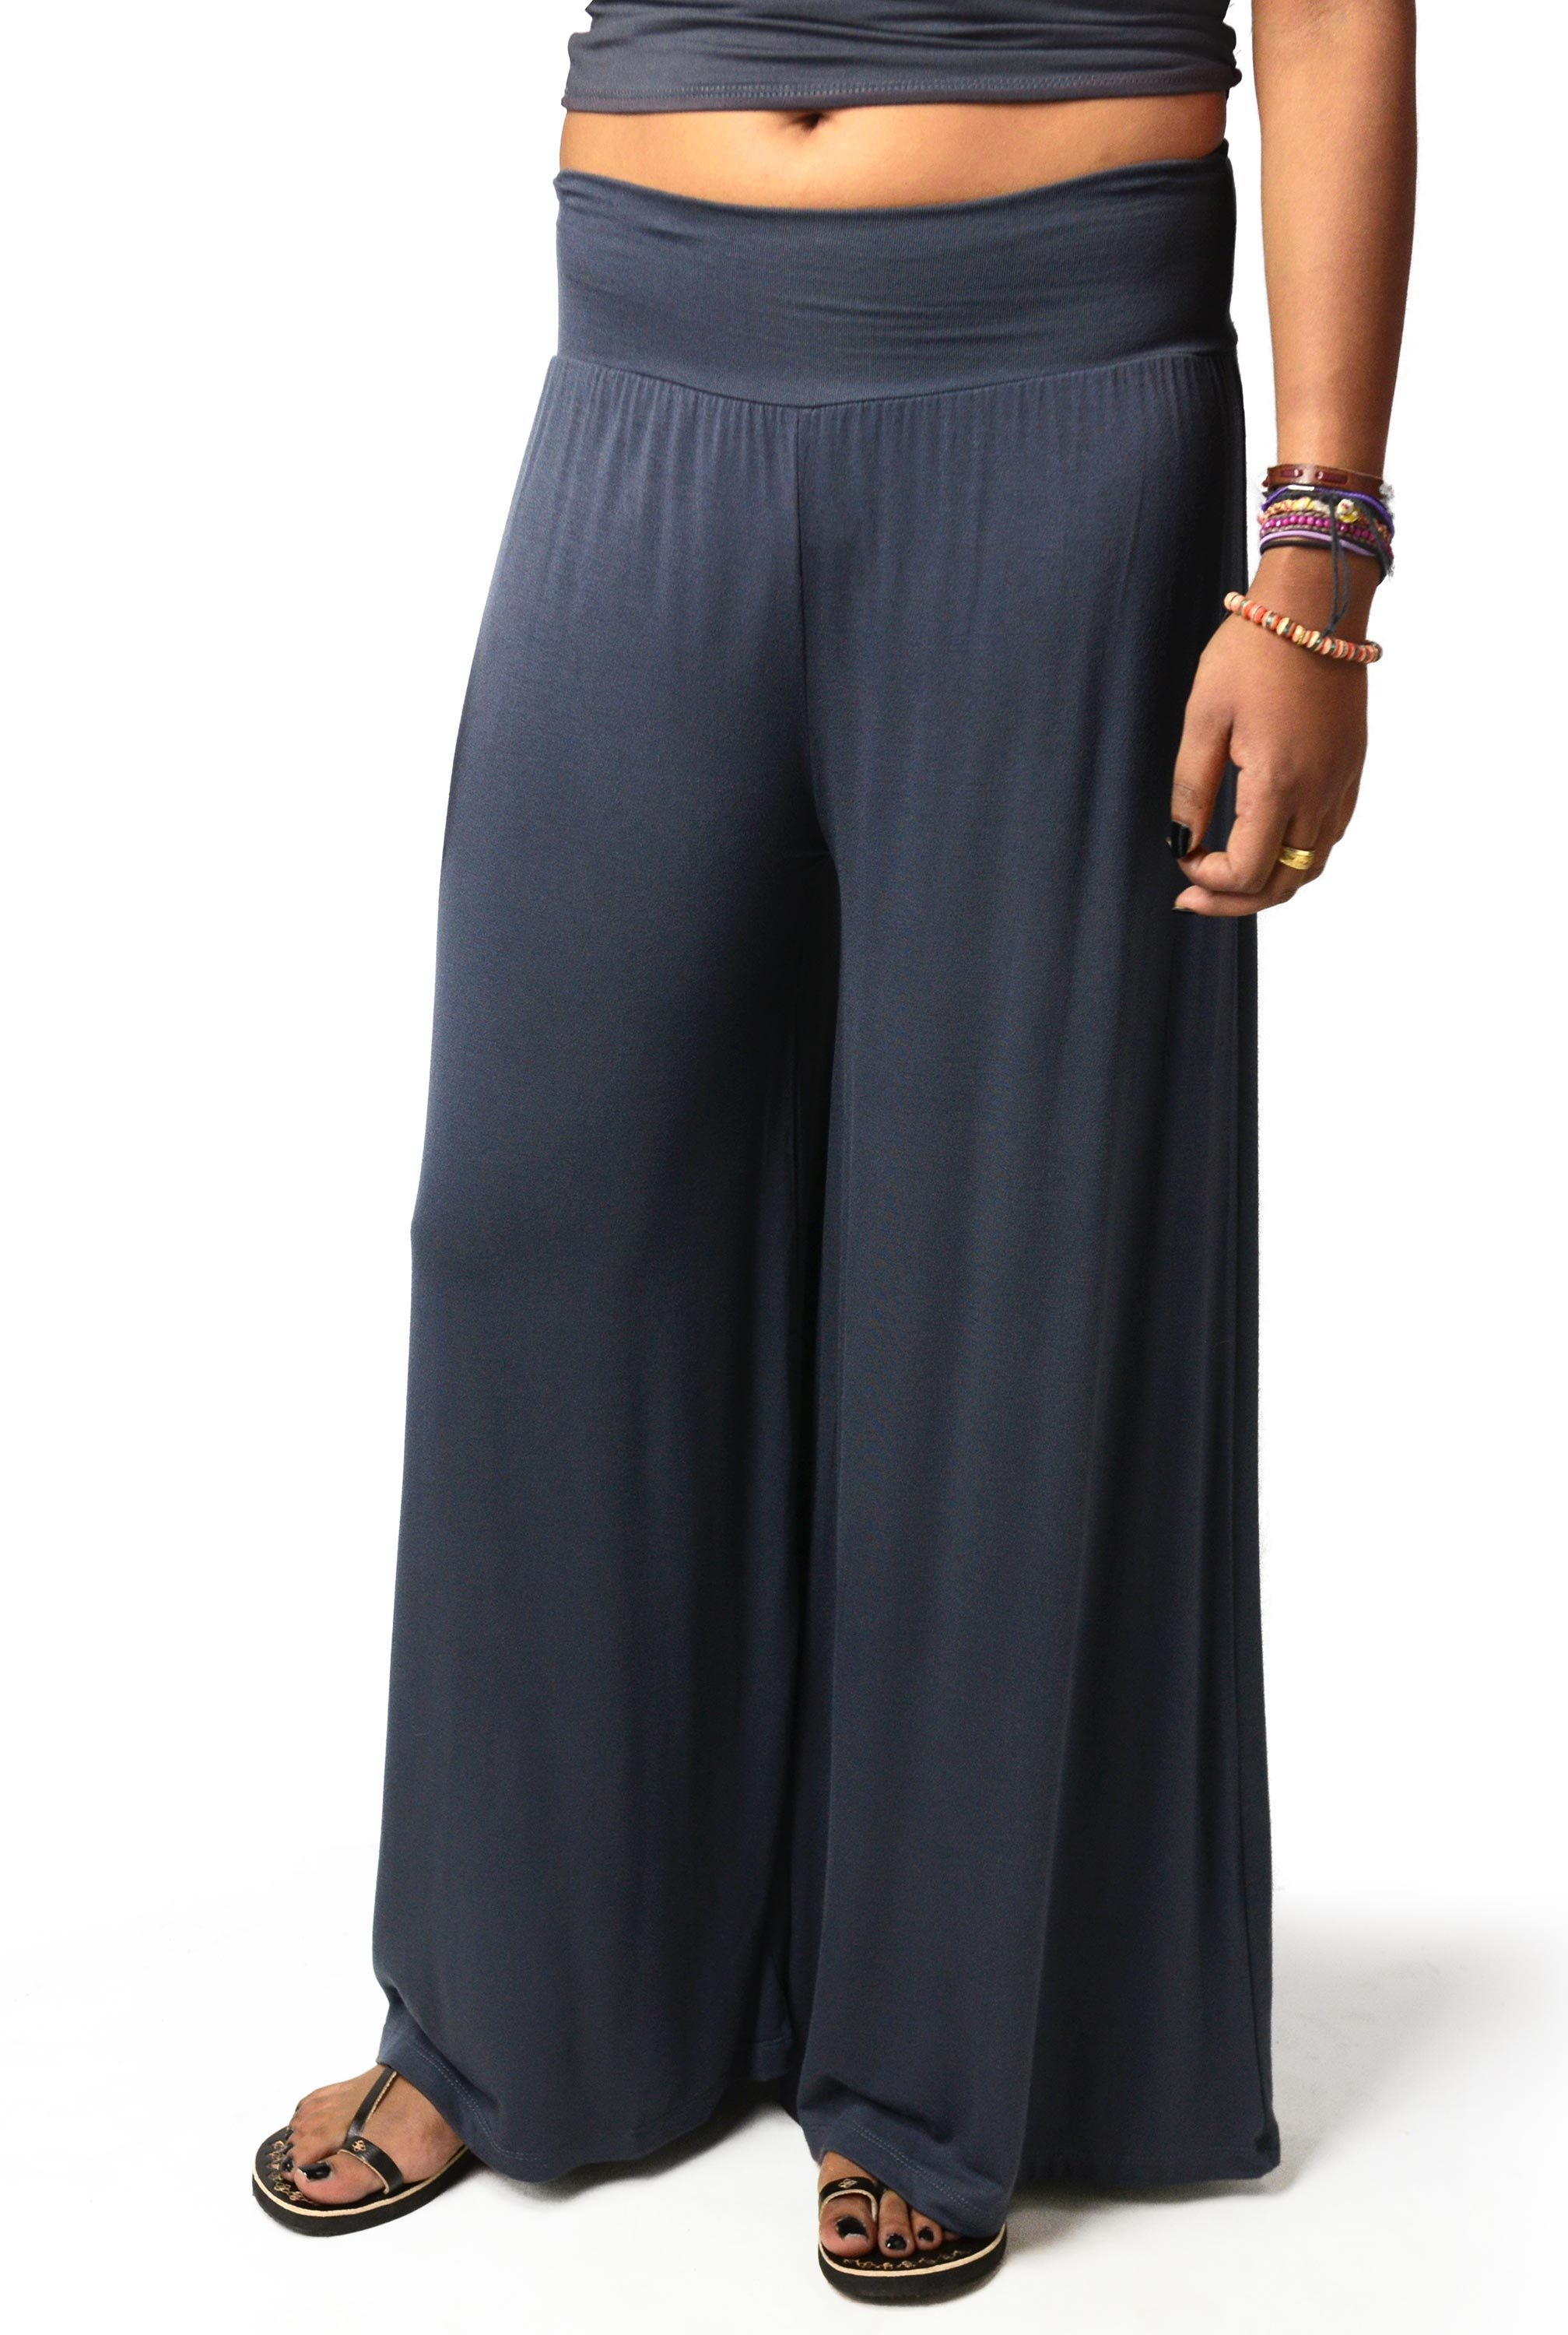 Grey Solid Wide Leg Pants -